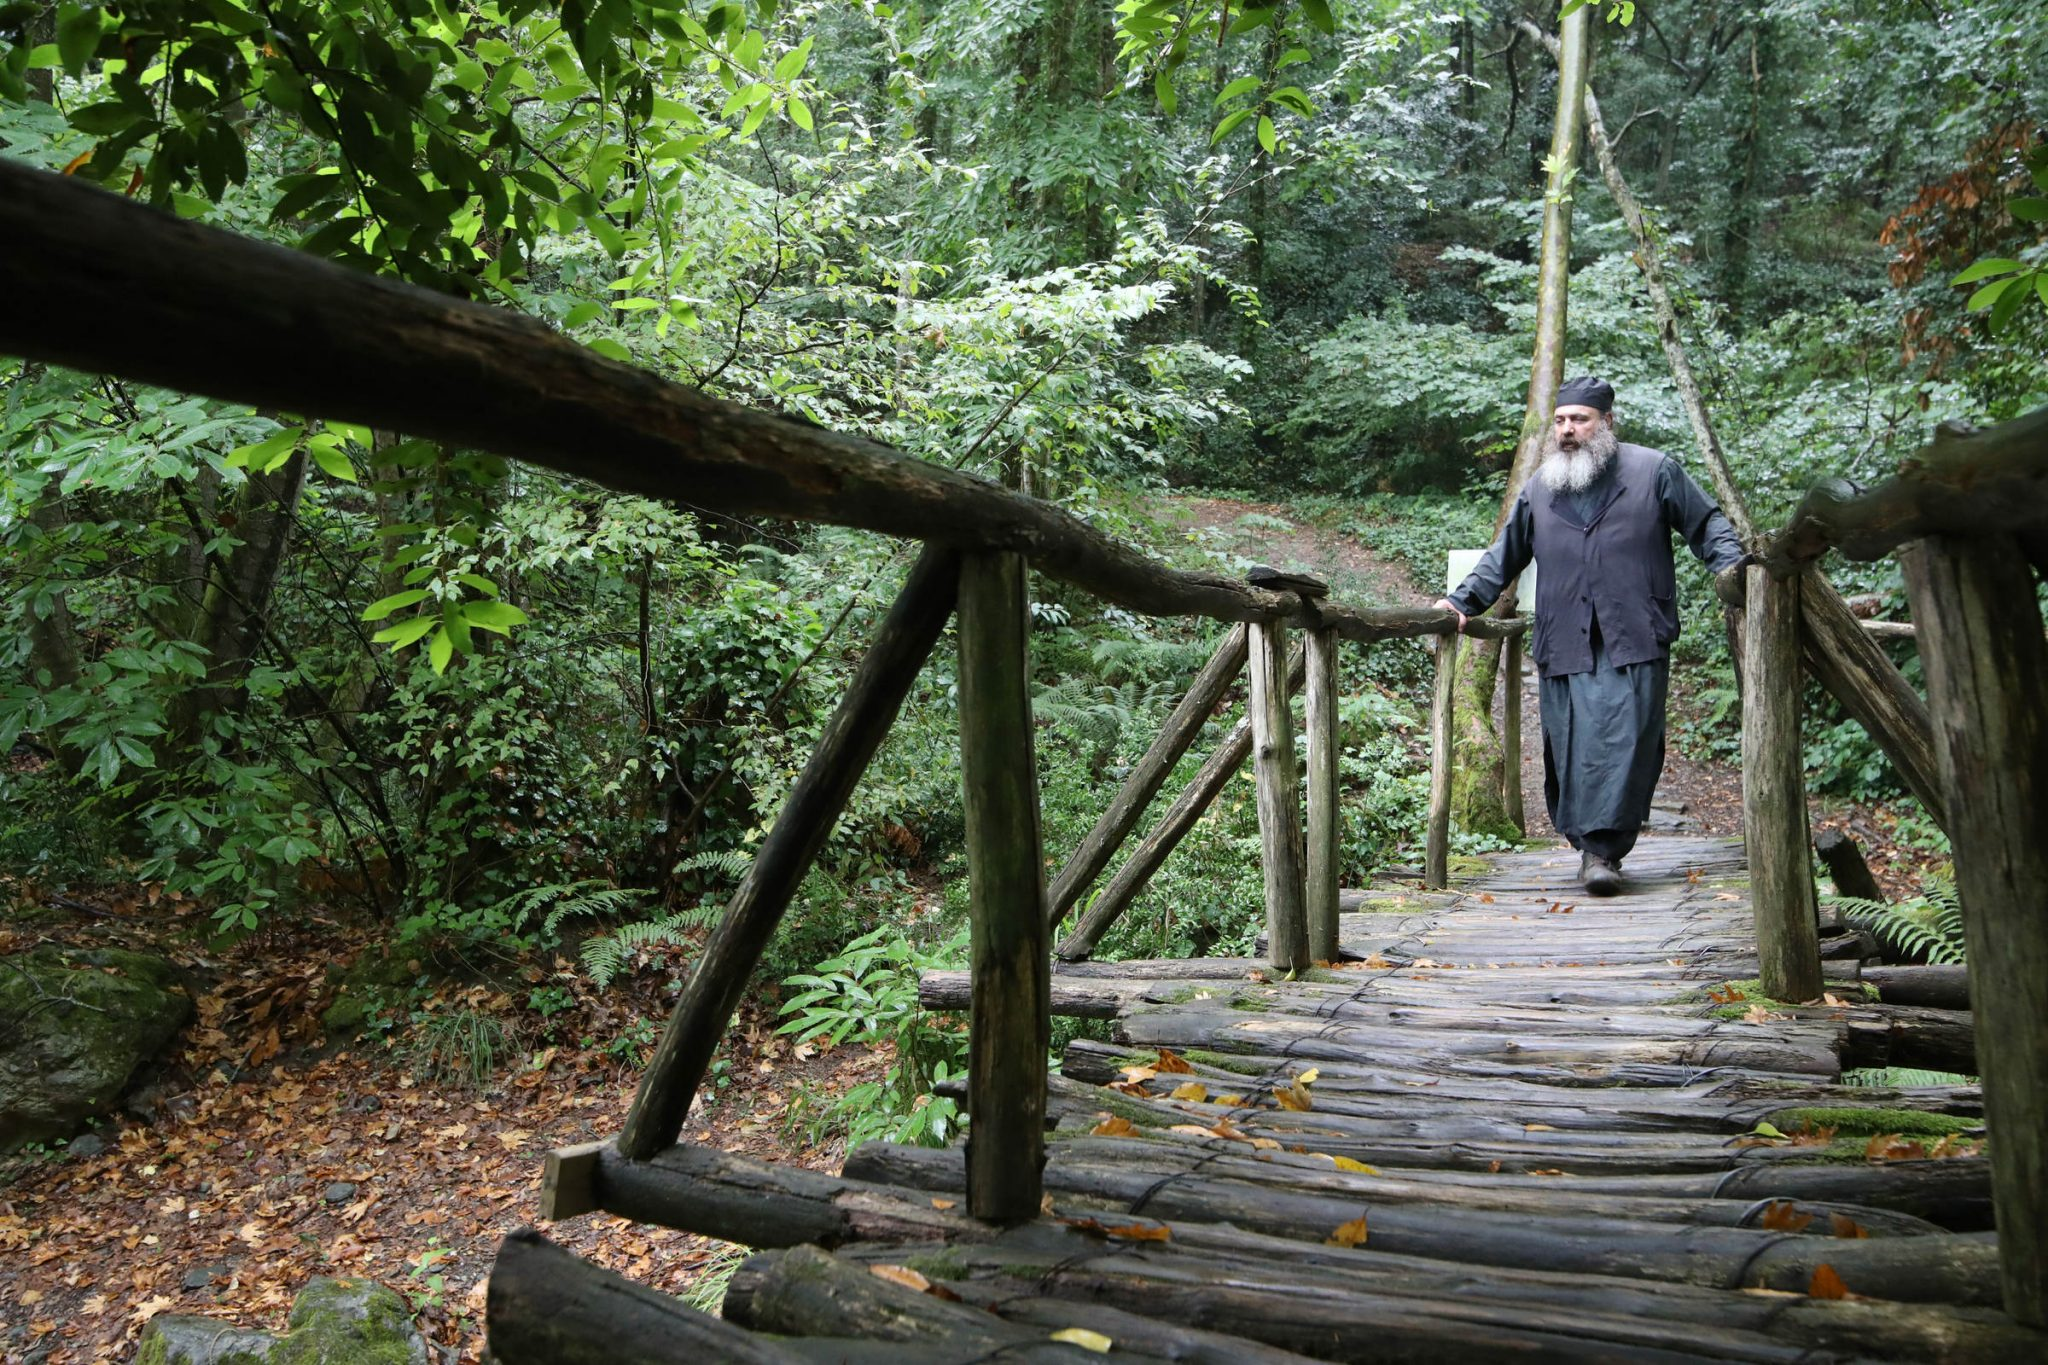 On the footpath till Paisios of Mount Athos' cell - the bridge